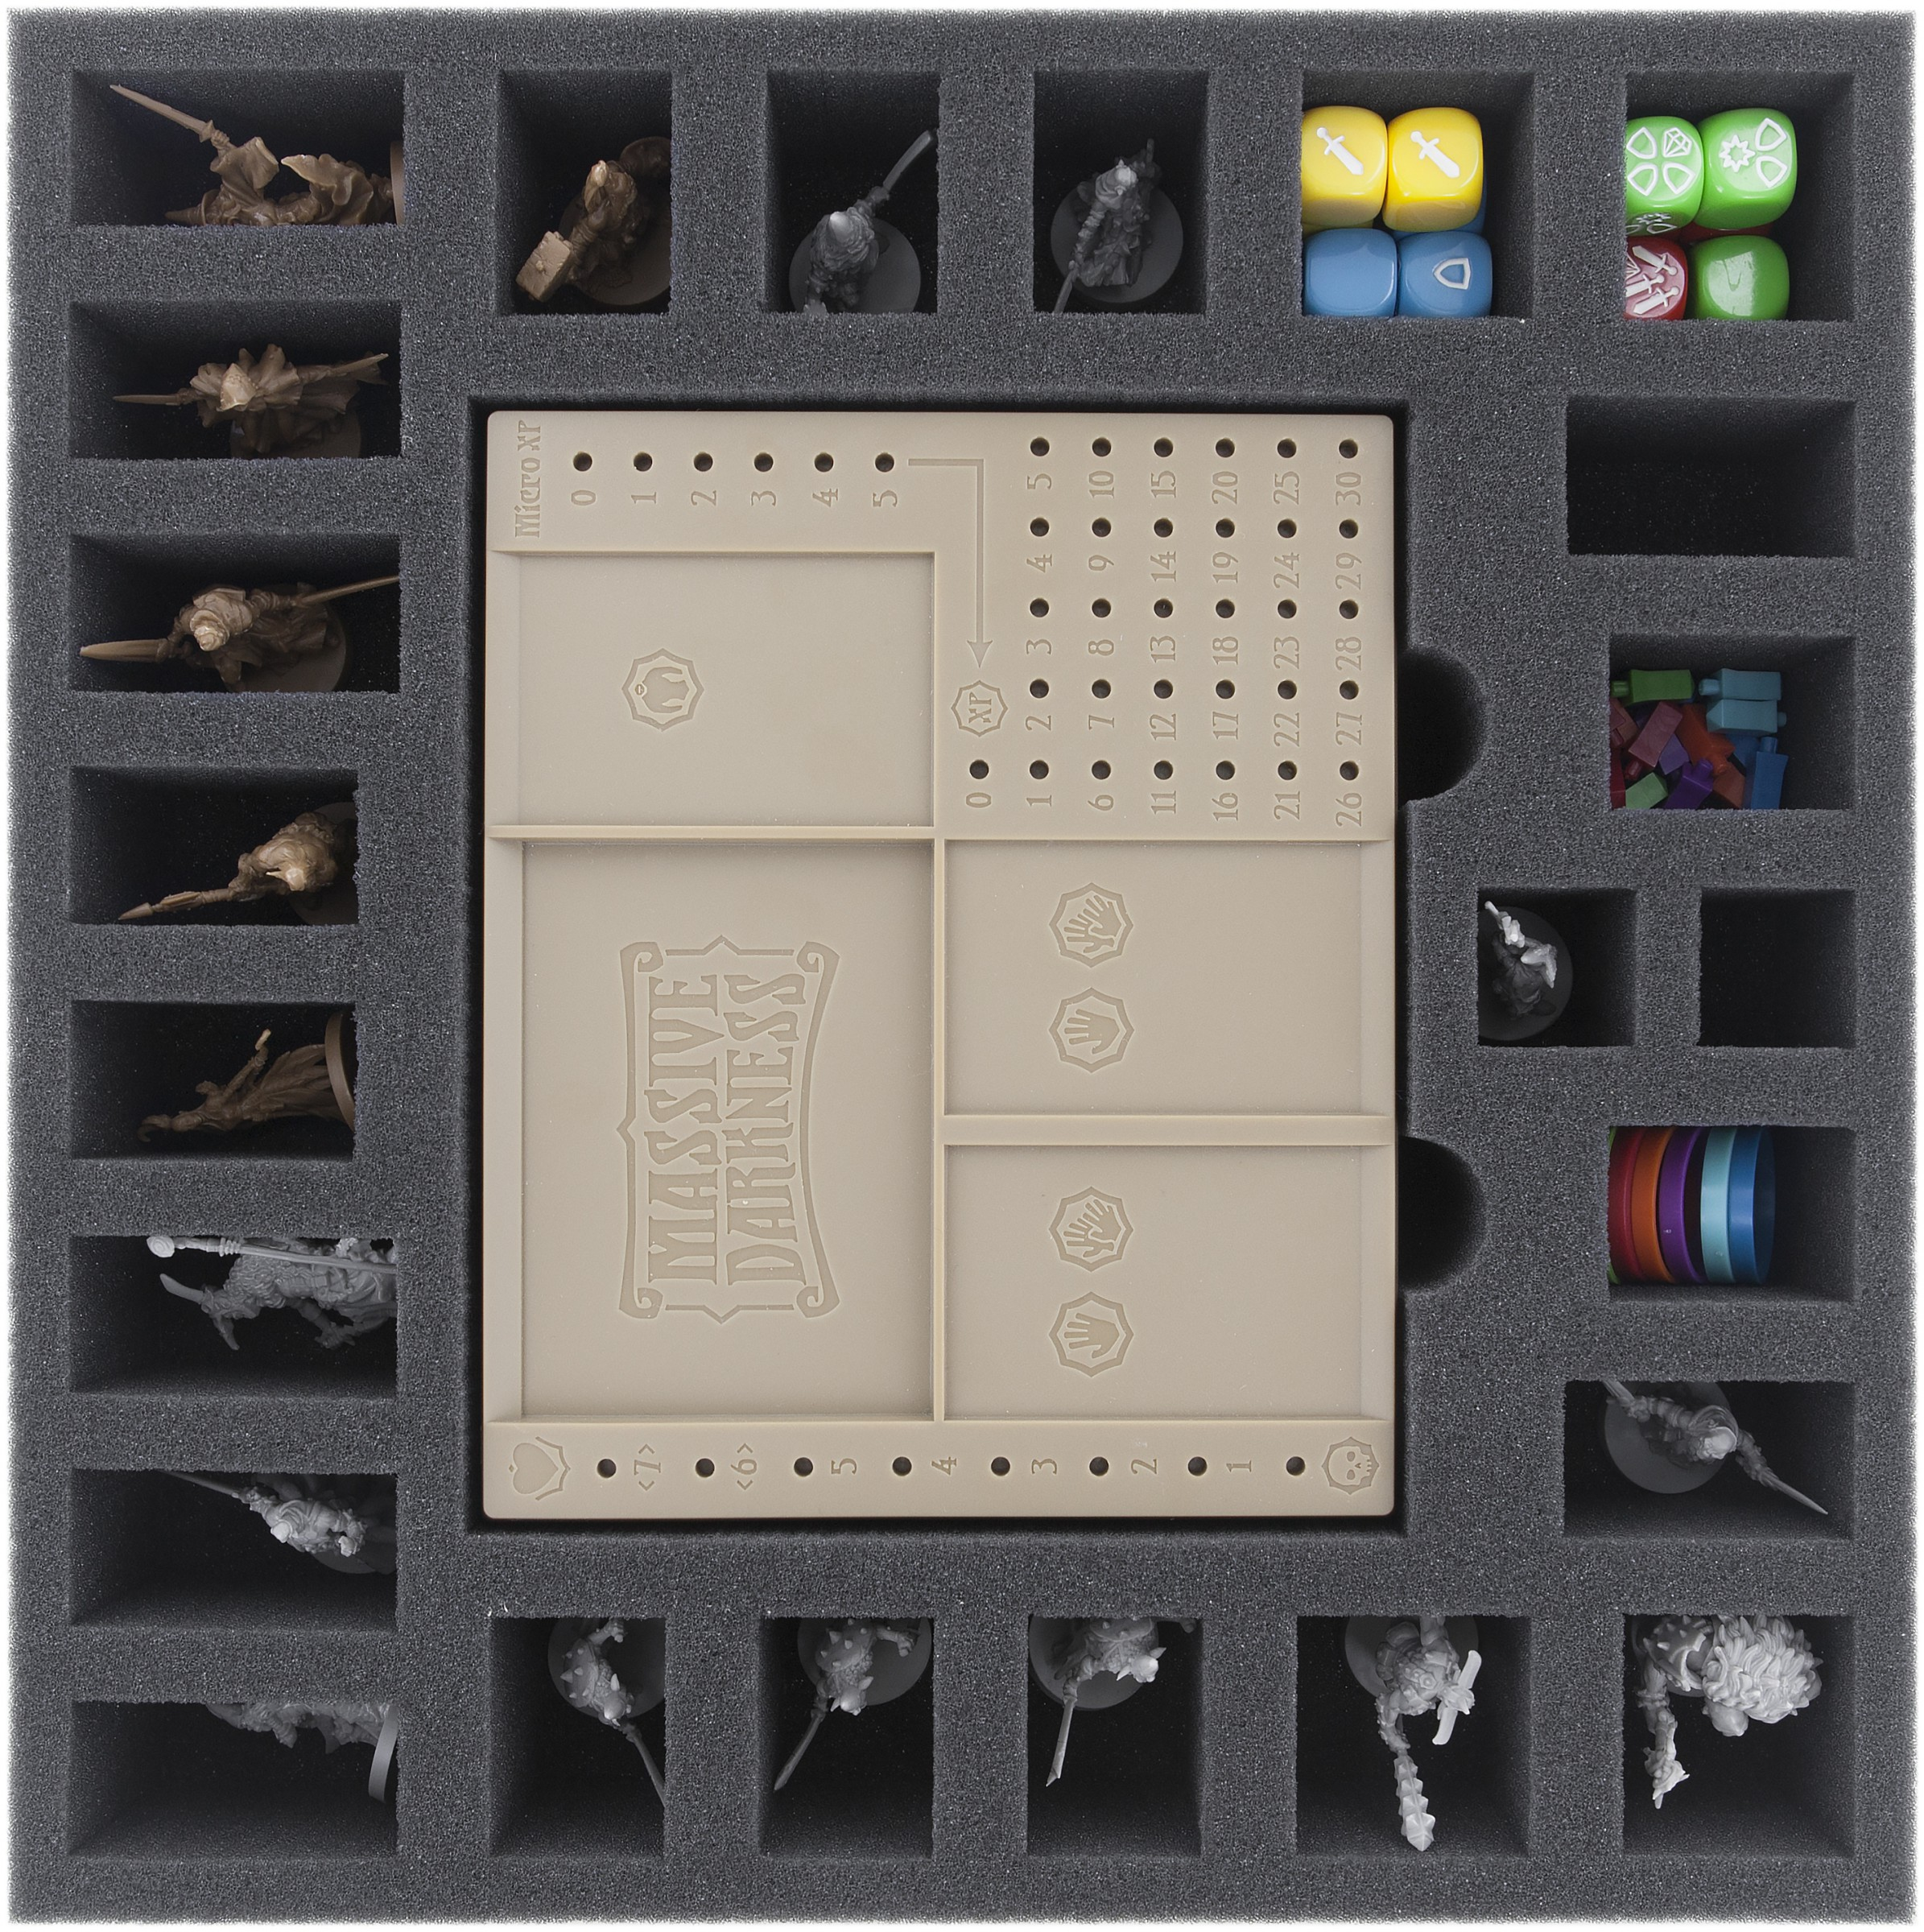 BHKW055BO 55 mm foam tray with 25 compartments for Massive Darkness -  Dashboards | Feldherr Worldwide